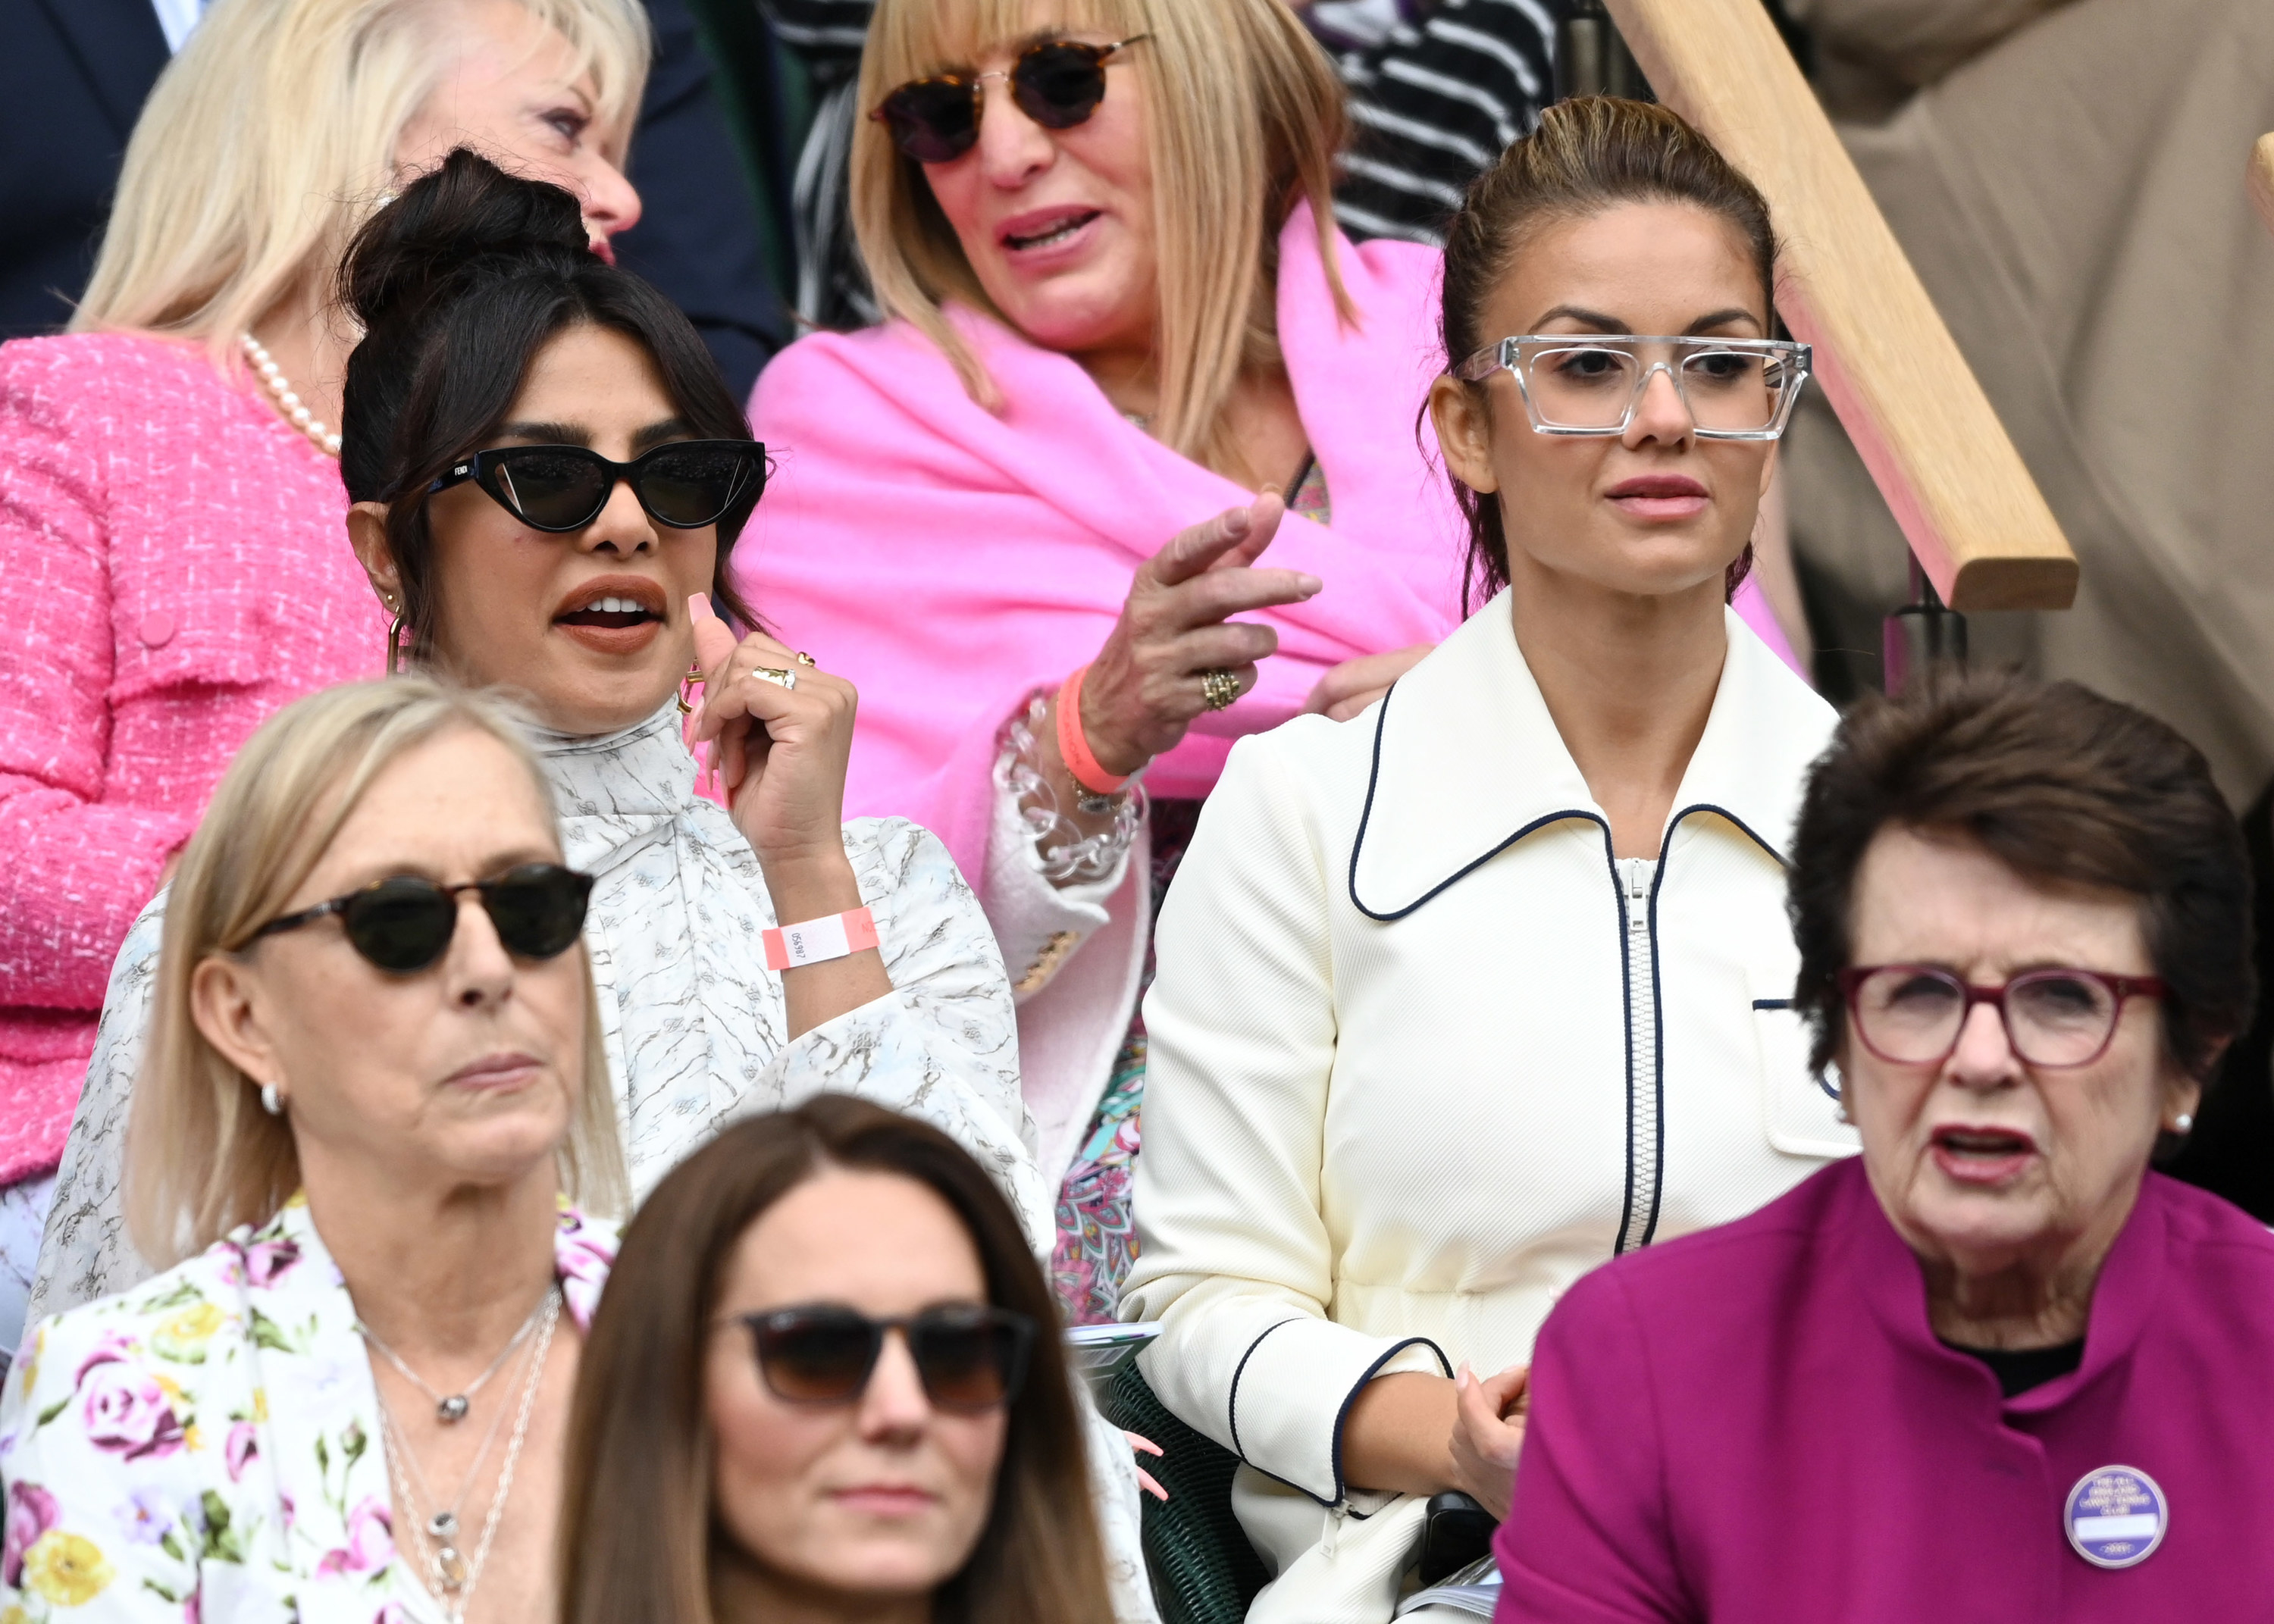 Priyanka Chopra and Kate Middleton are photographed during the Wimbledon Women's Final on Saturday